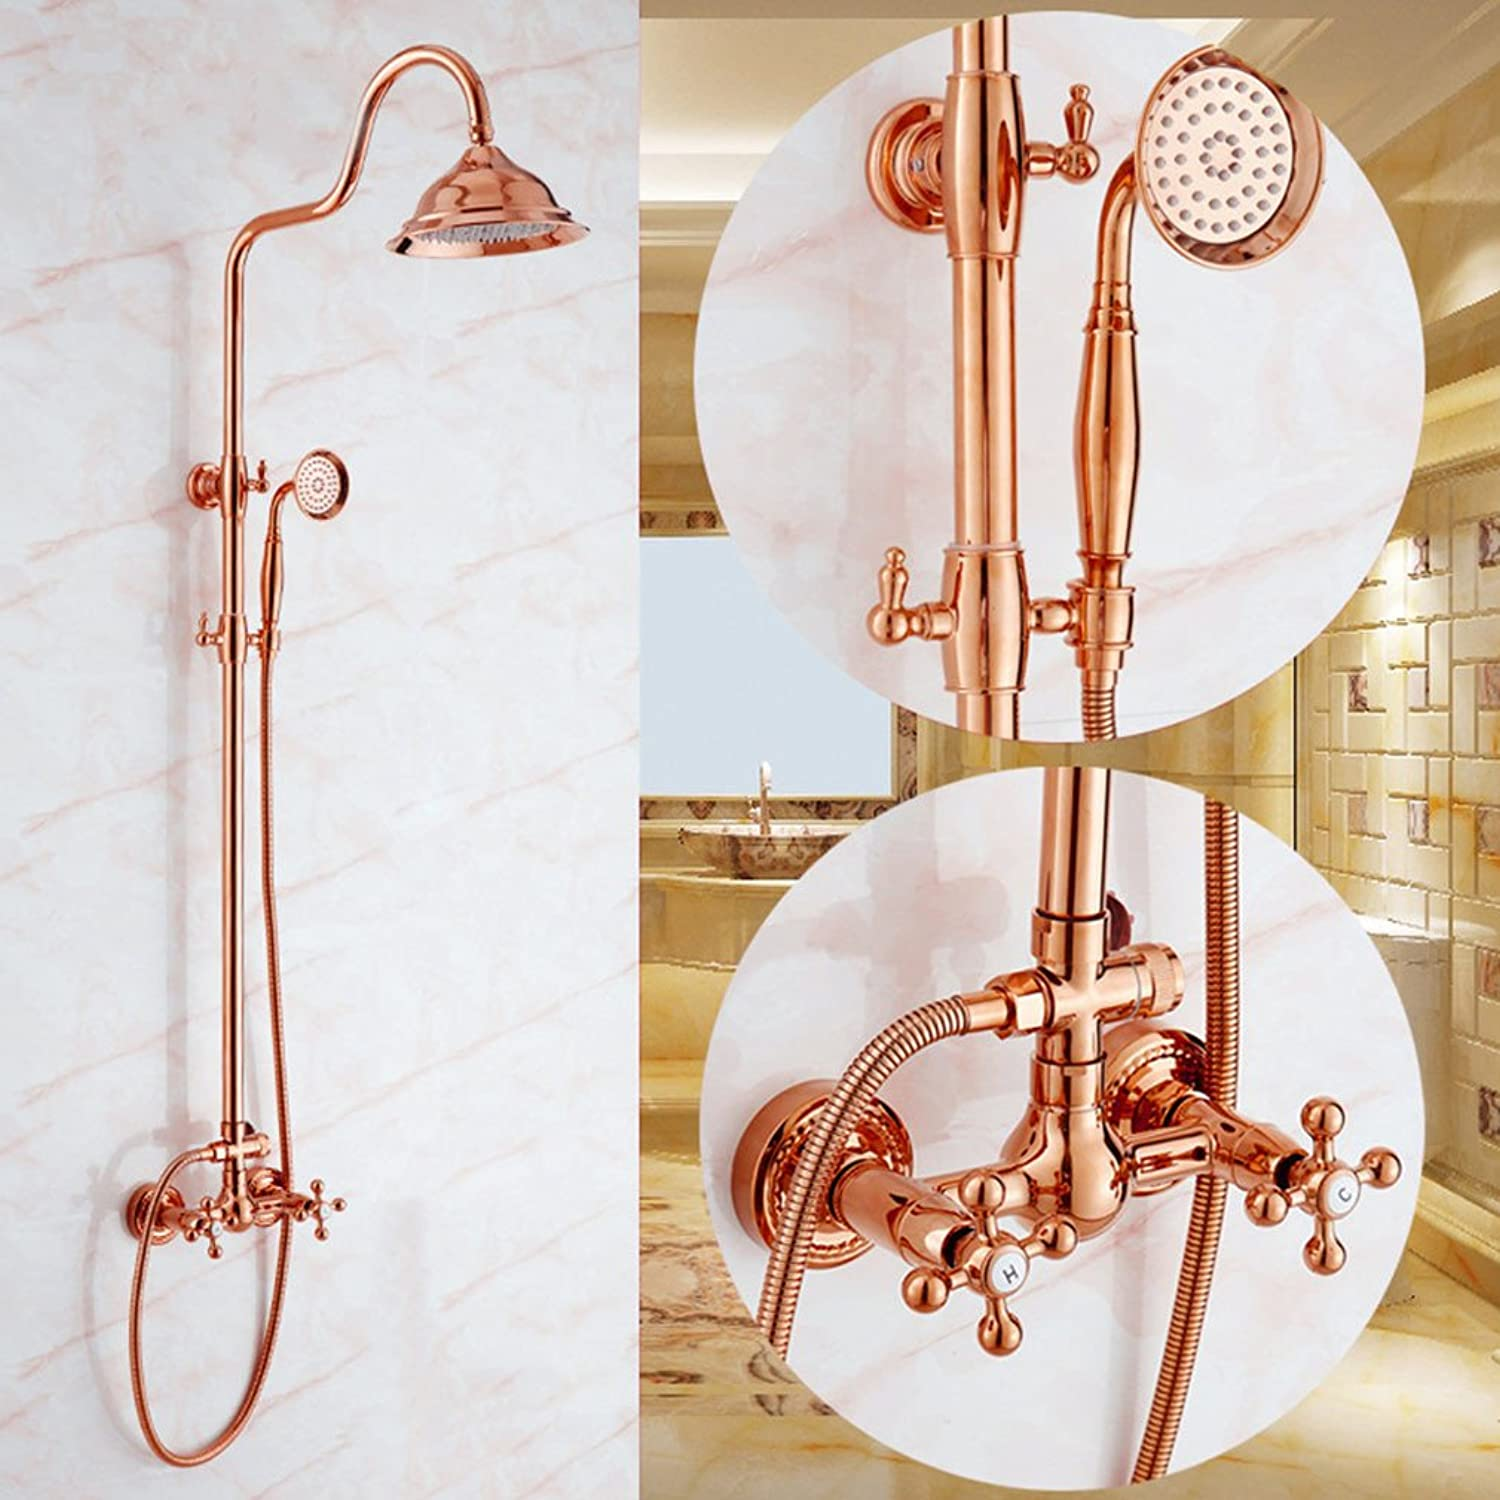 AiRobin-Continental Luxury gold Brass Shower System Ceramic Valve,pink gold